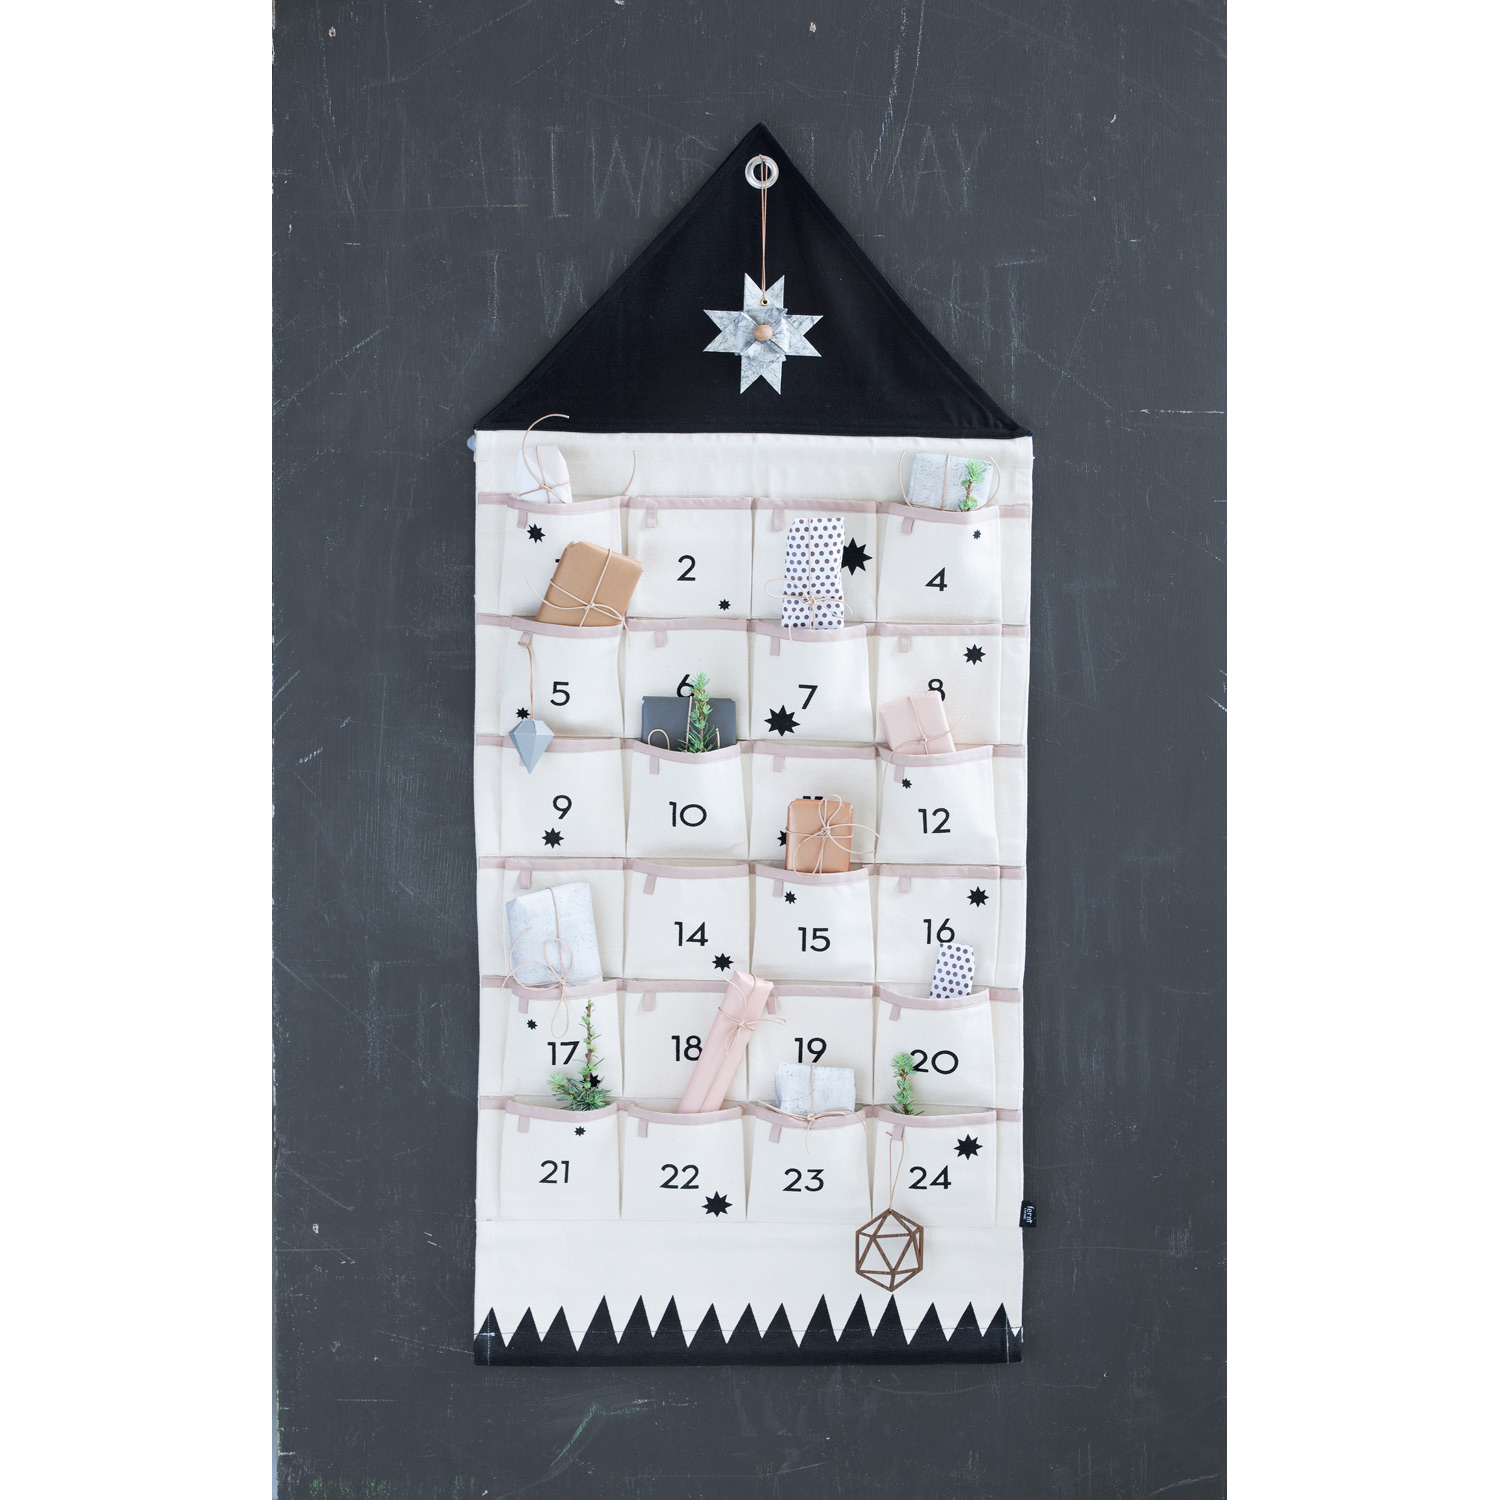 Astounding Ferm Living Adventskalender Referenz Von Christmas E